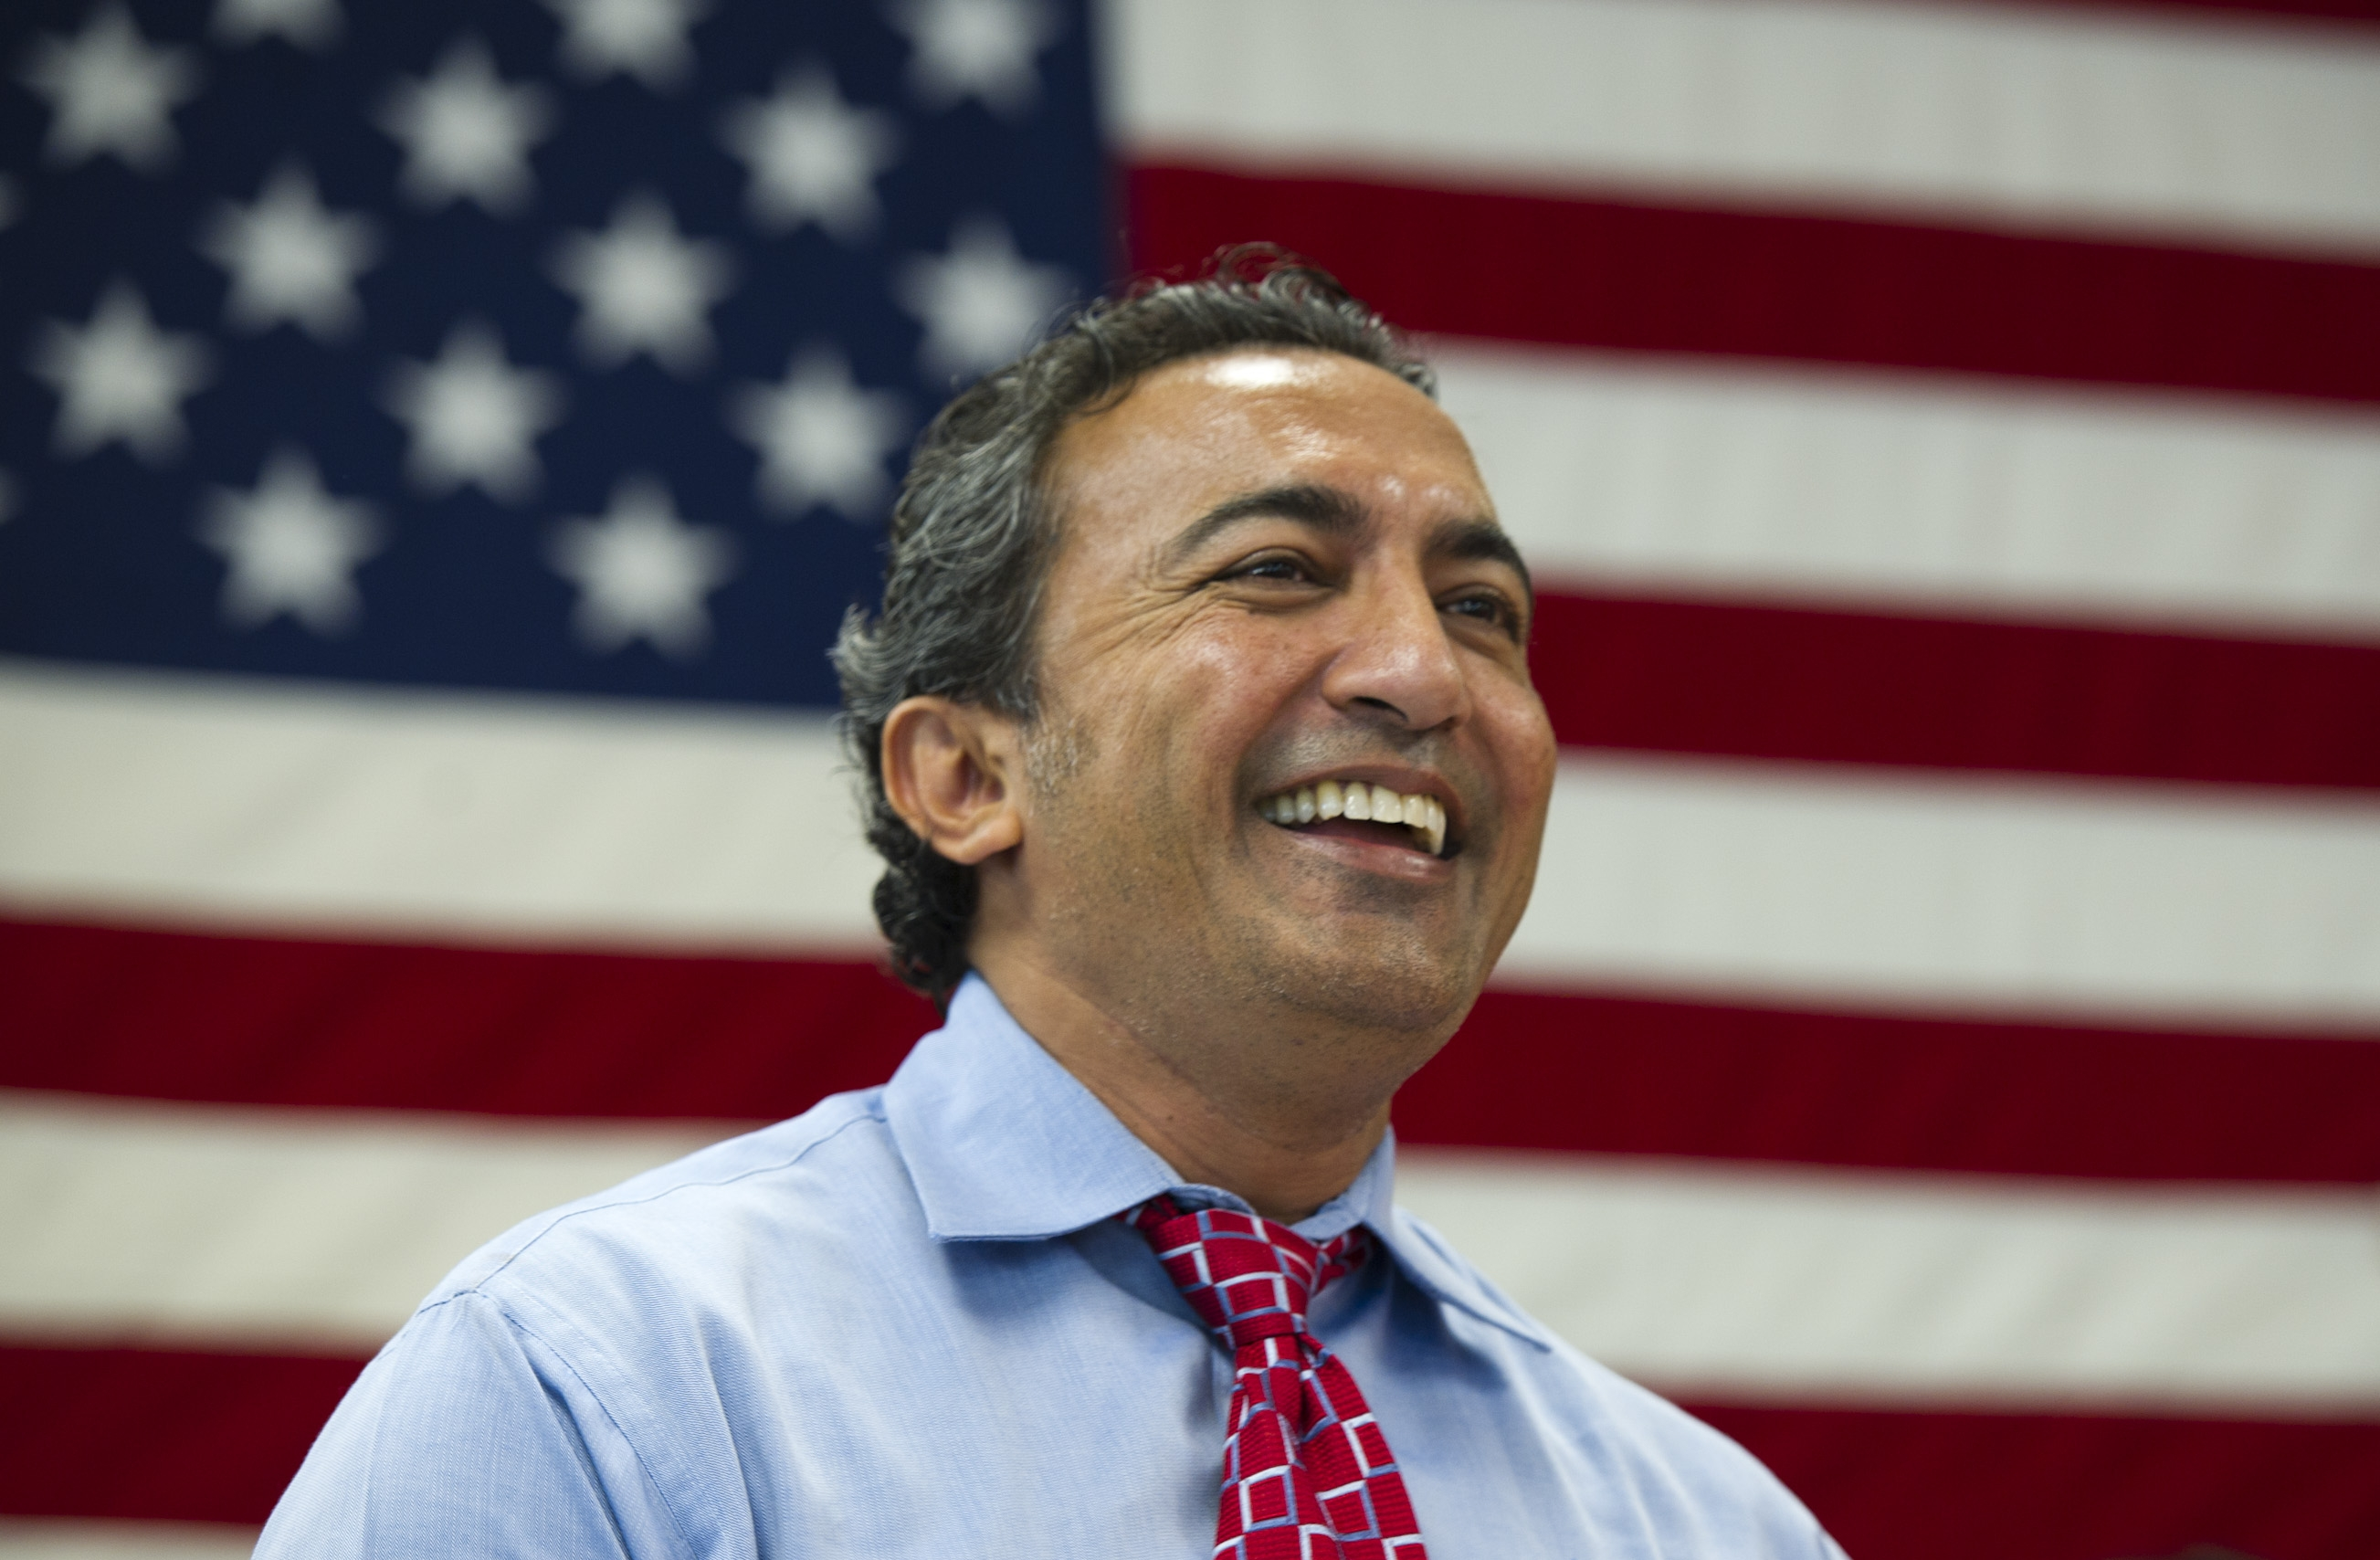 Incumbent Congressman Ami Bera has been endorsed by the Sacramento Bee in his re-election campaign.